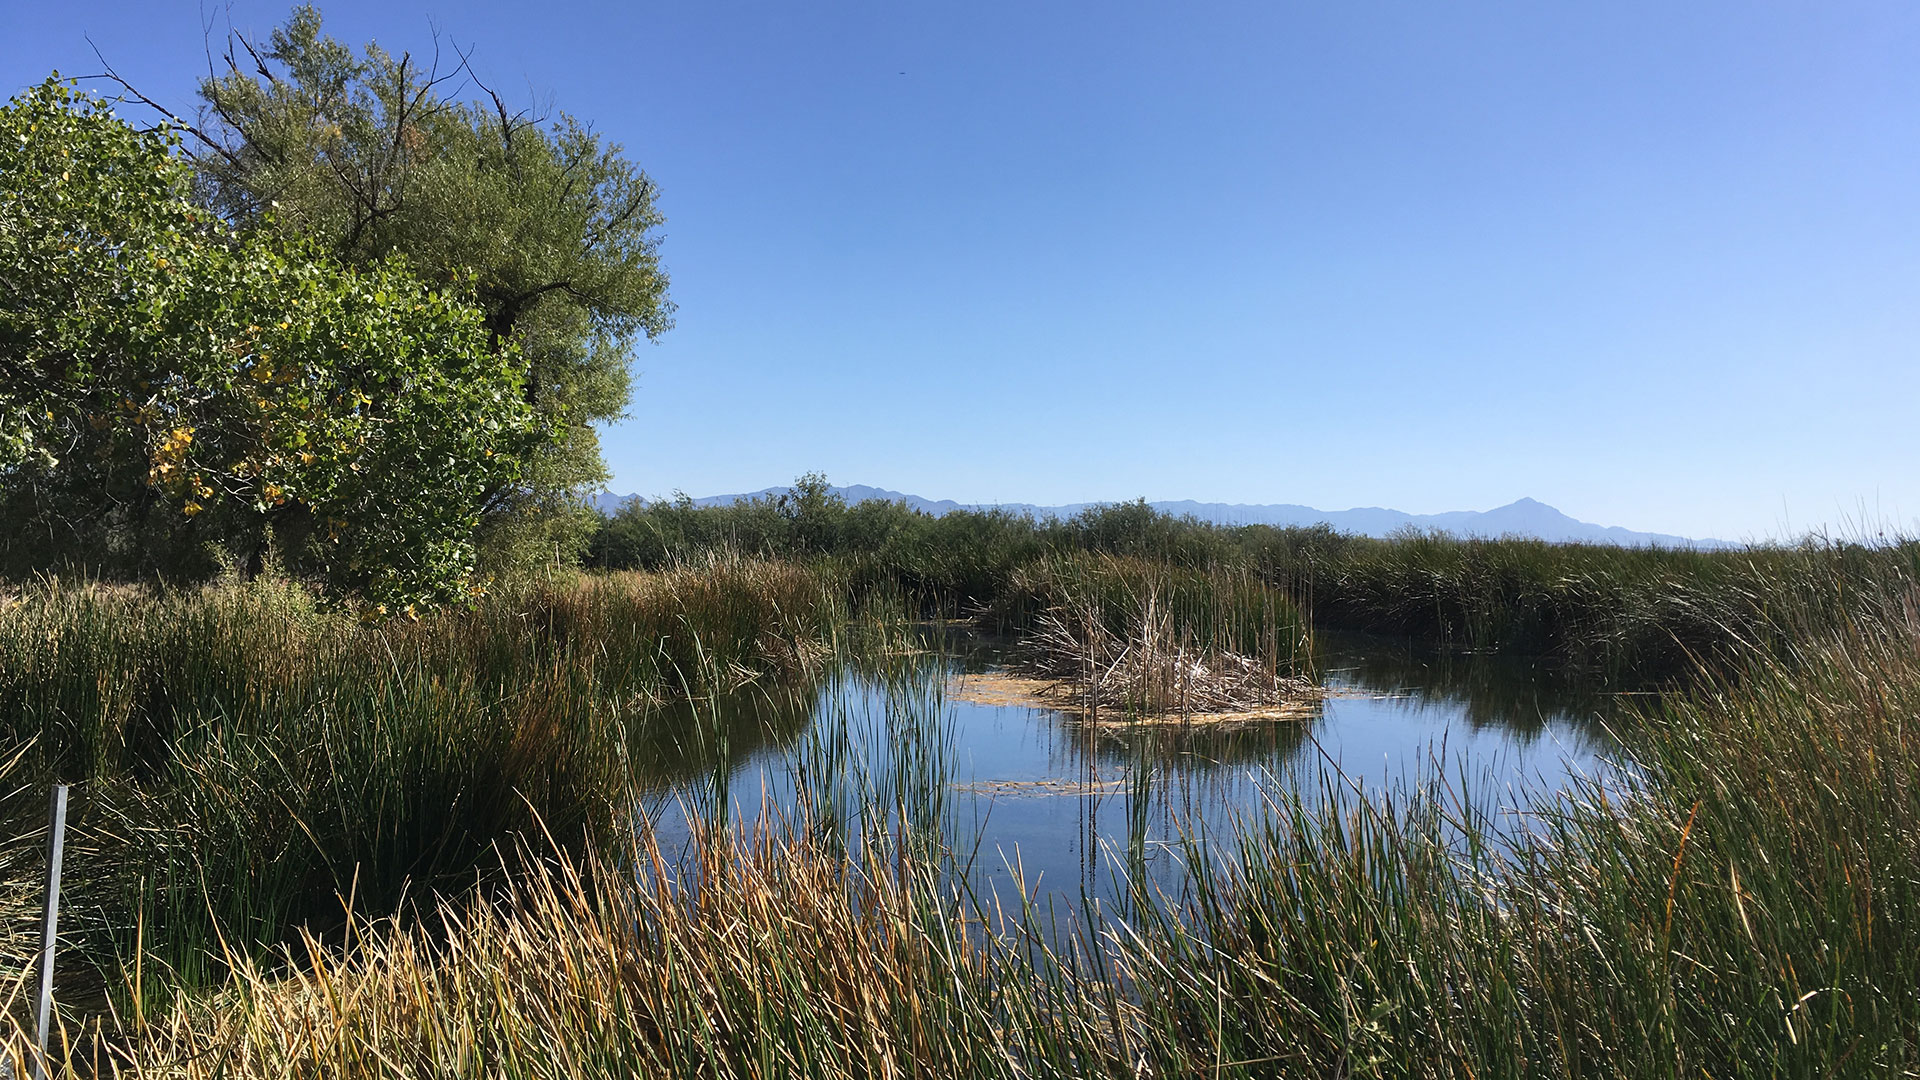 A spring-fed pond at the San Bernardino National Wildlife Refuge, a stone's throw from the U.S.-Mexico border. This property is managed by the U.S. Fish and Wildlife Service.